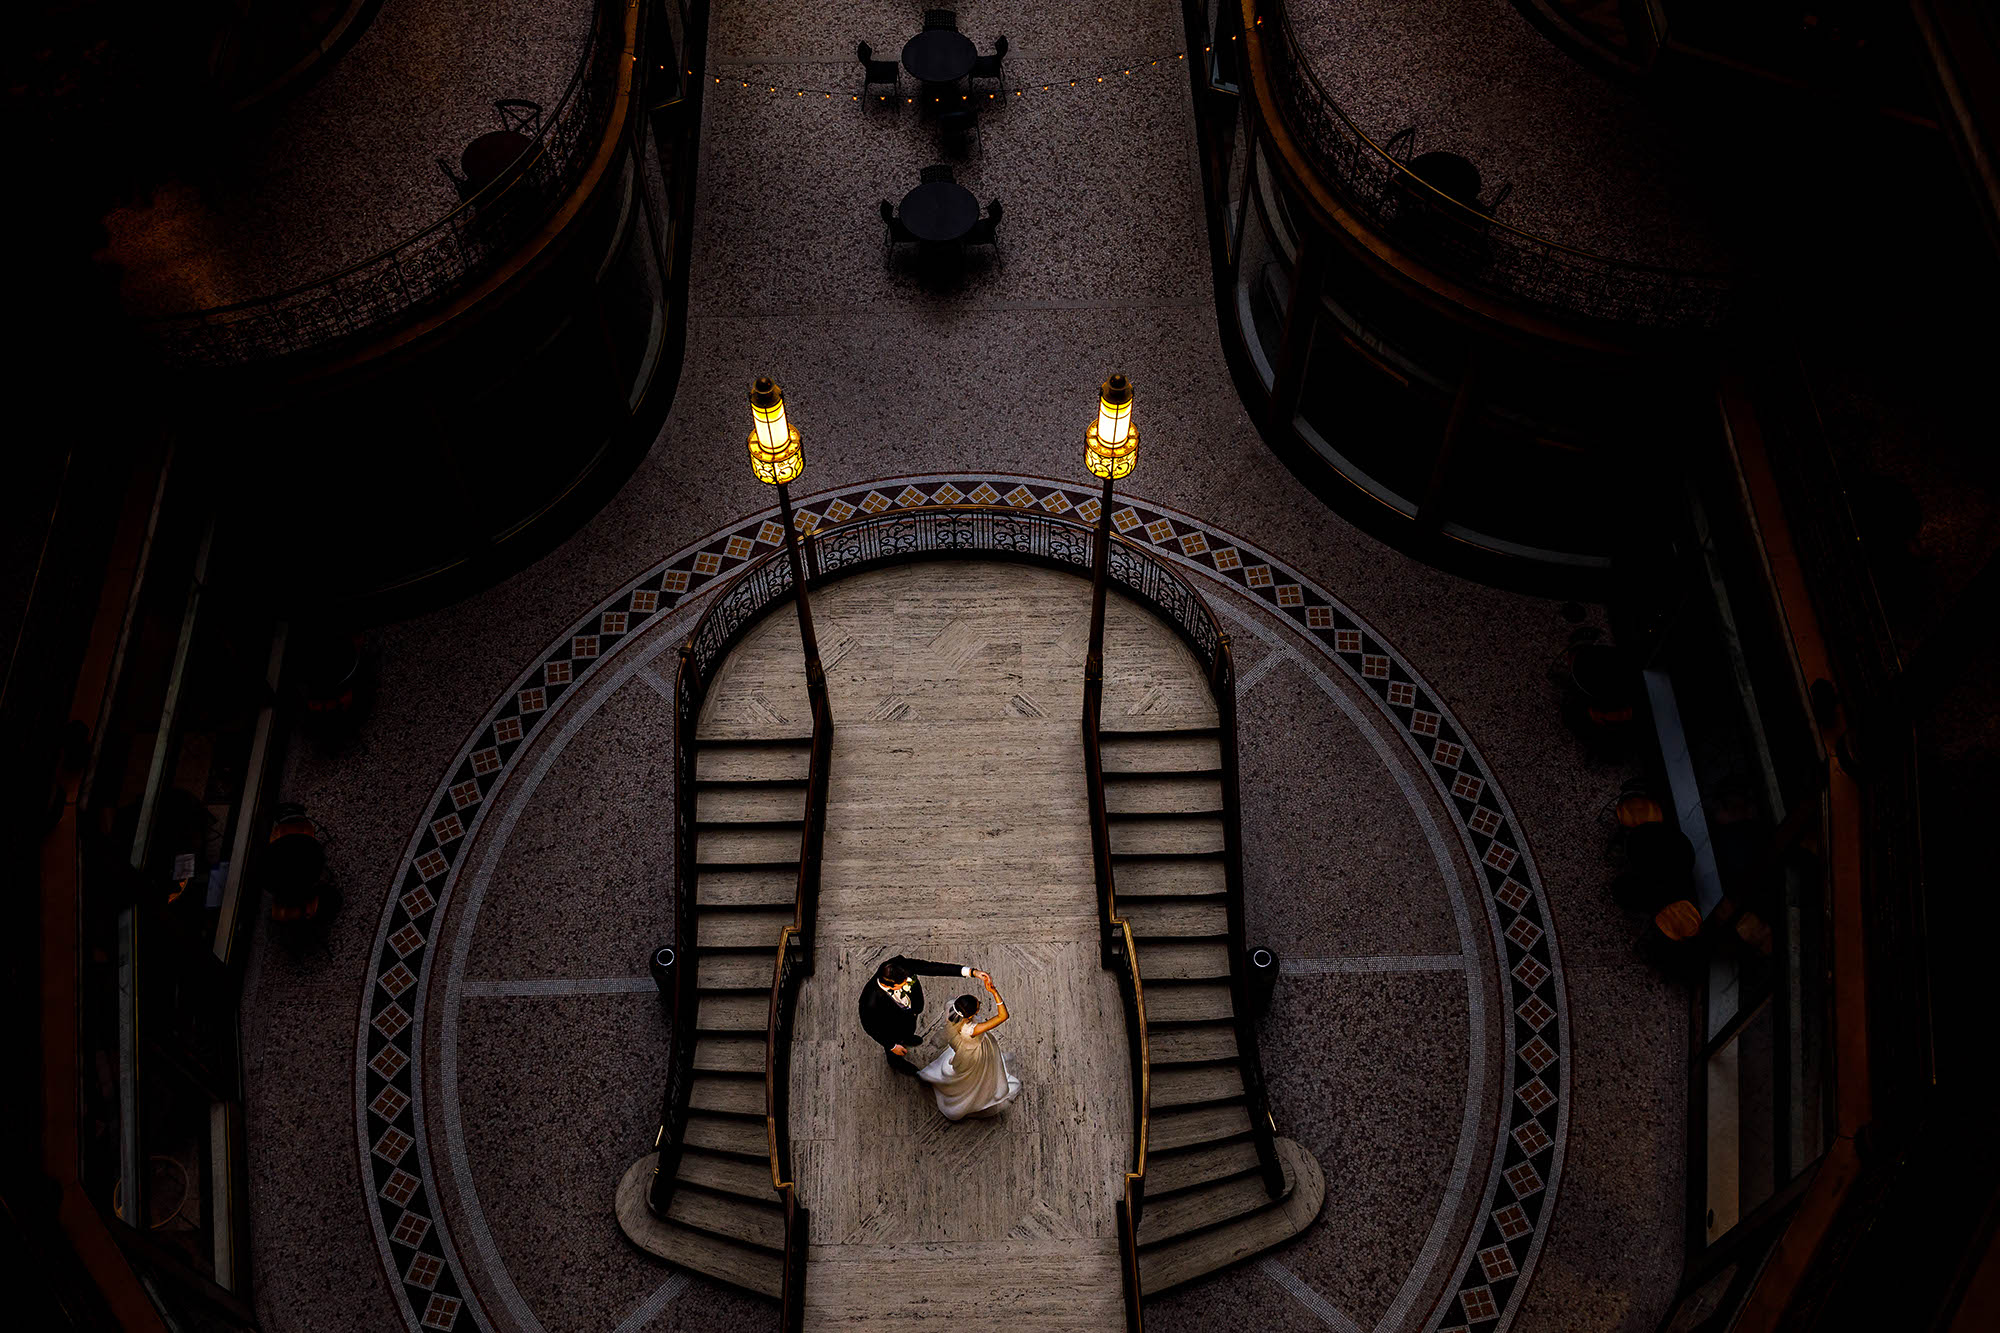 The groom twirls his bride on the landing of the ornate staircase in Cleveland's Historic Arcade located between Euclid Avenue and Superior Avenue.